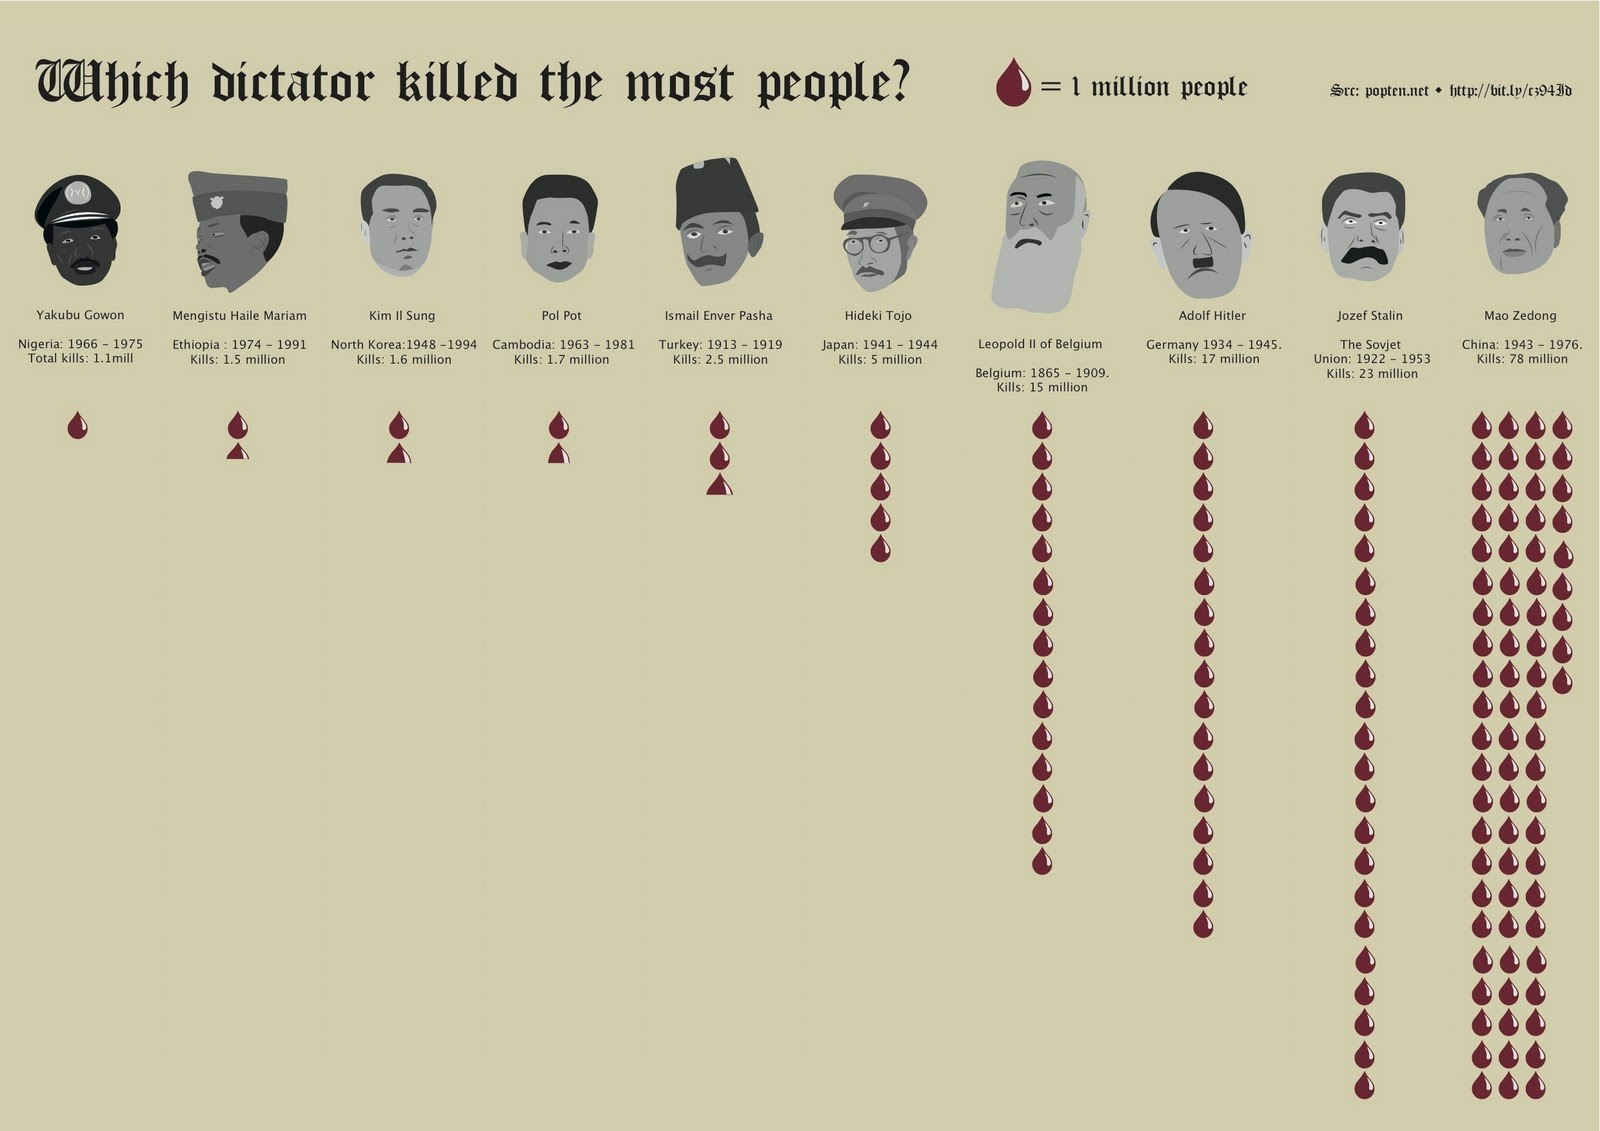 a look at the greatest totalitarian dictator of all times adoft hitler